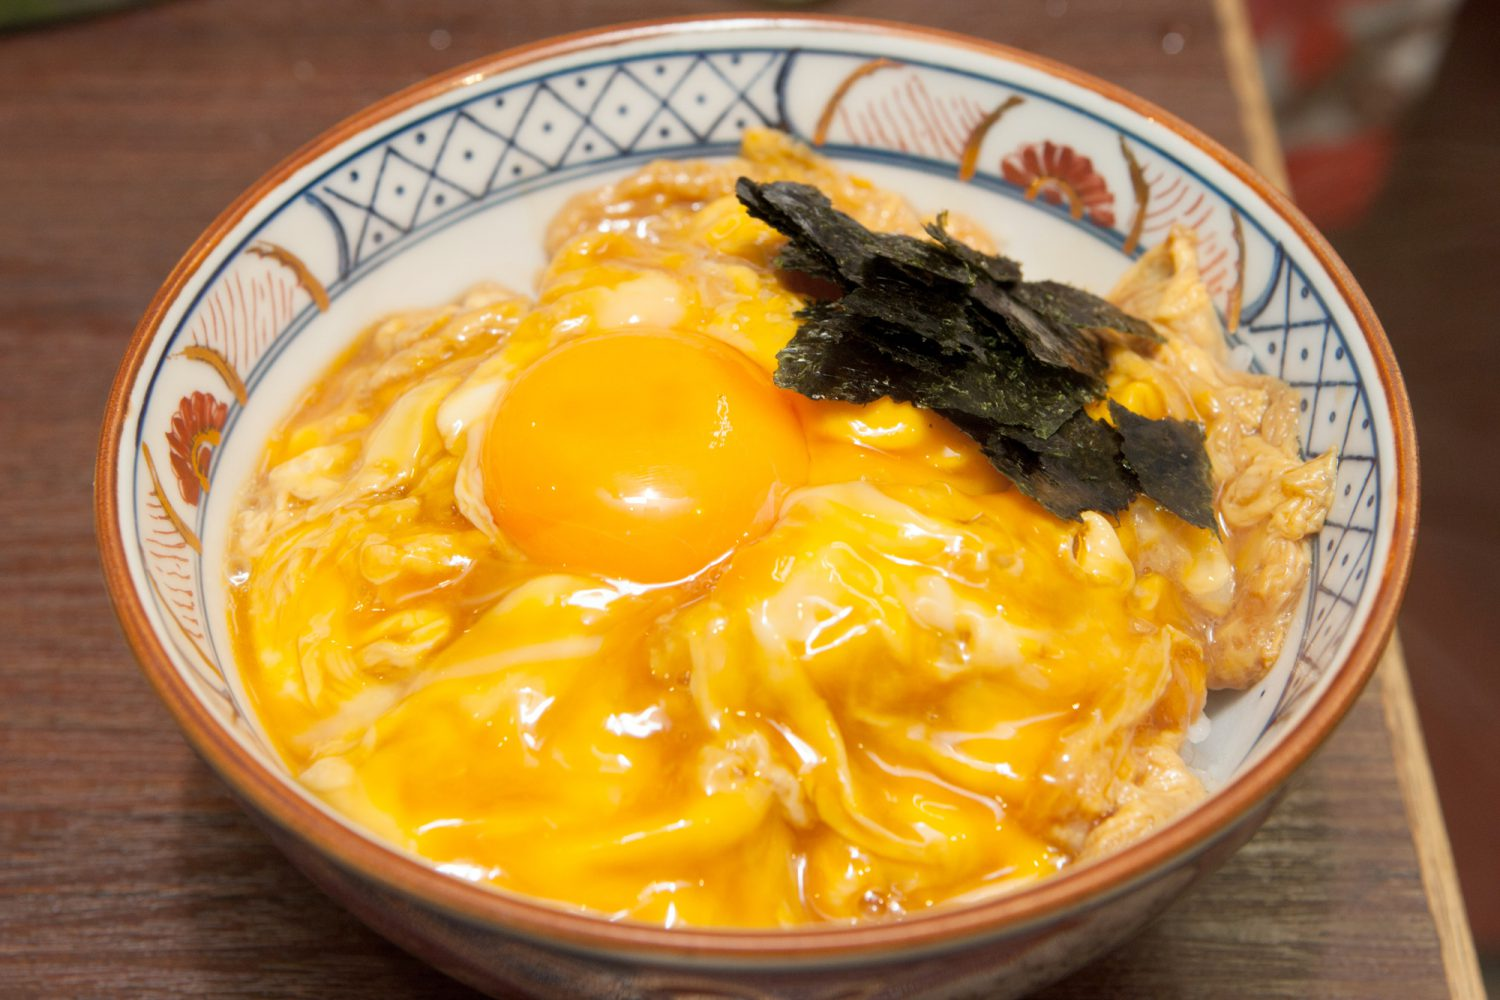 TAMAGO-DON(玉子丼) : Rice topped with partly-cooked egg raw yolk